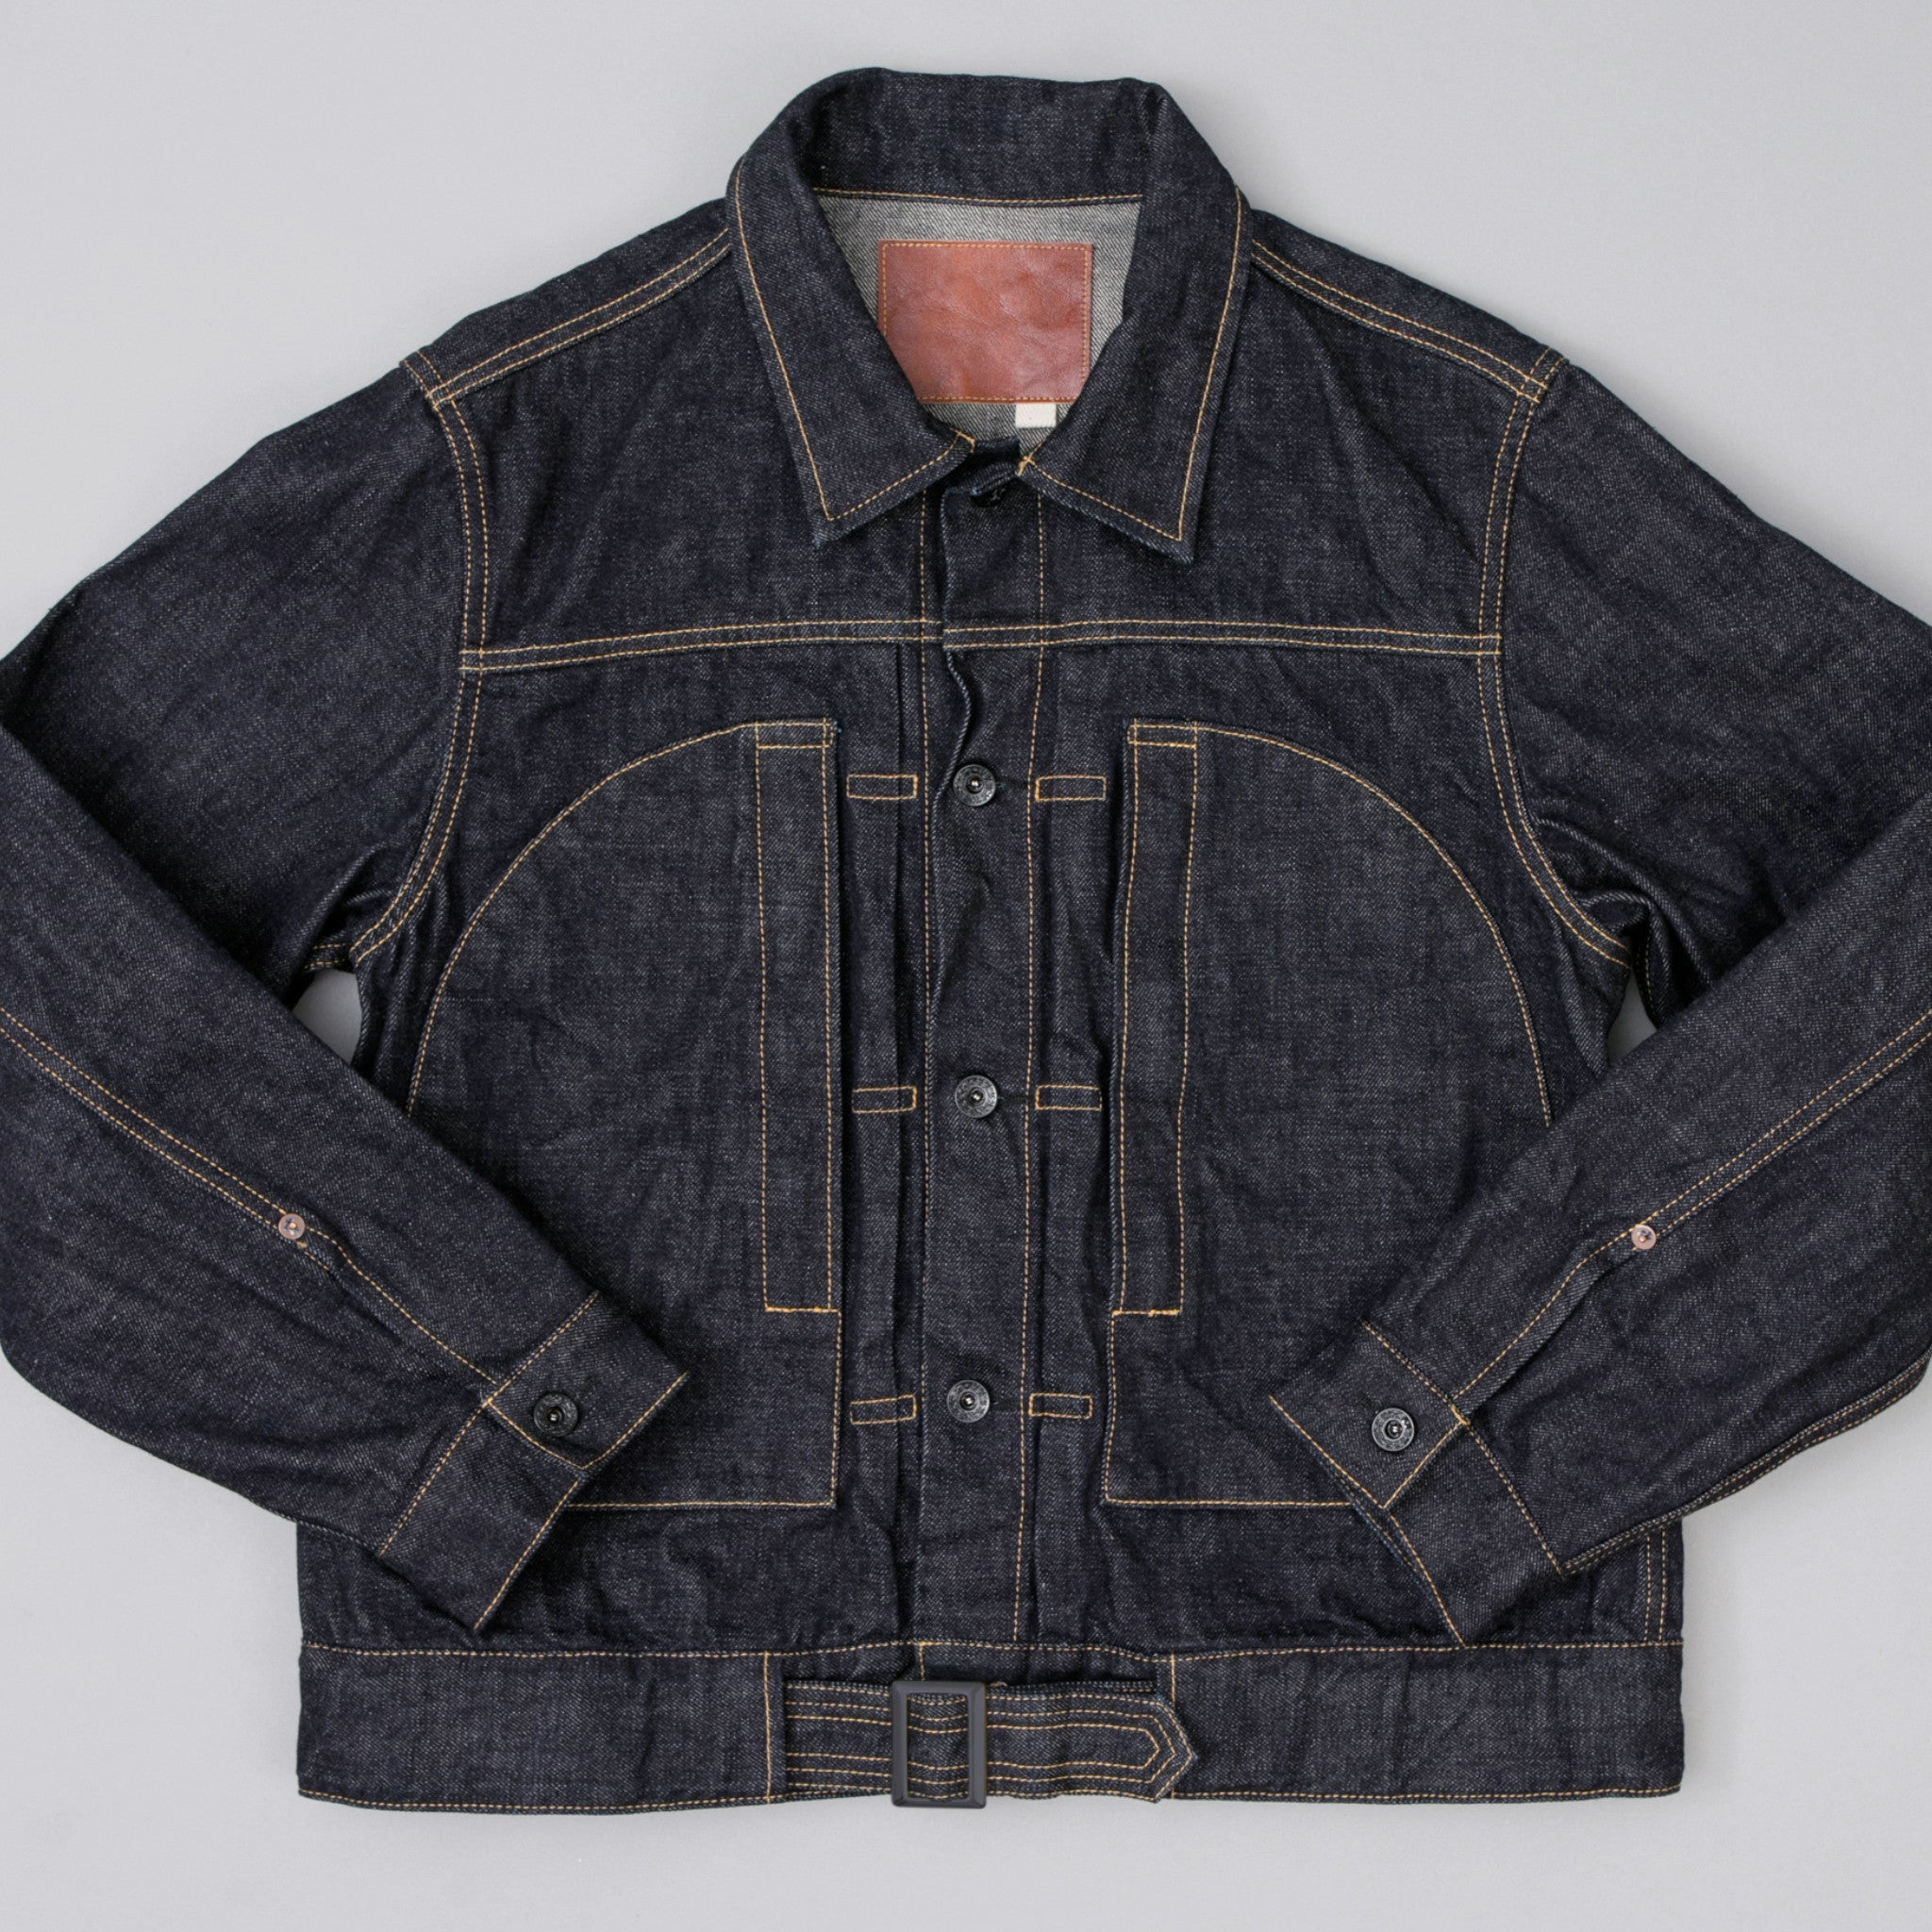 The Hill-Side - Japanamerica Type II Jacket, TH-S Mills 14 oz Okayama Selvedge Denim - JK11-363